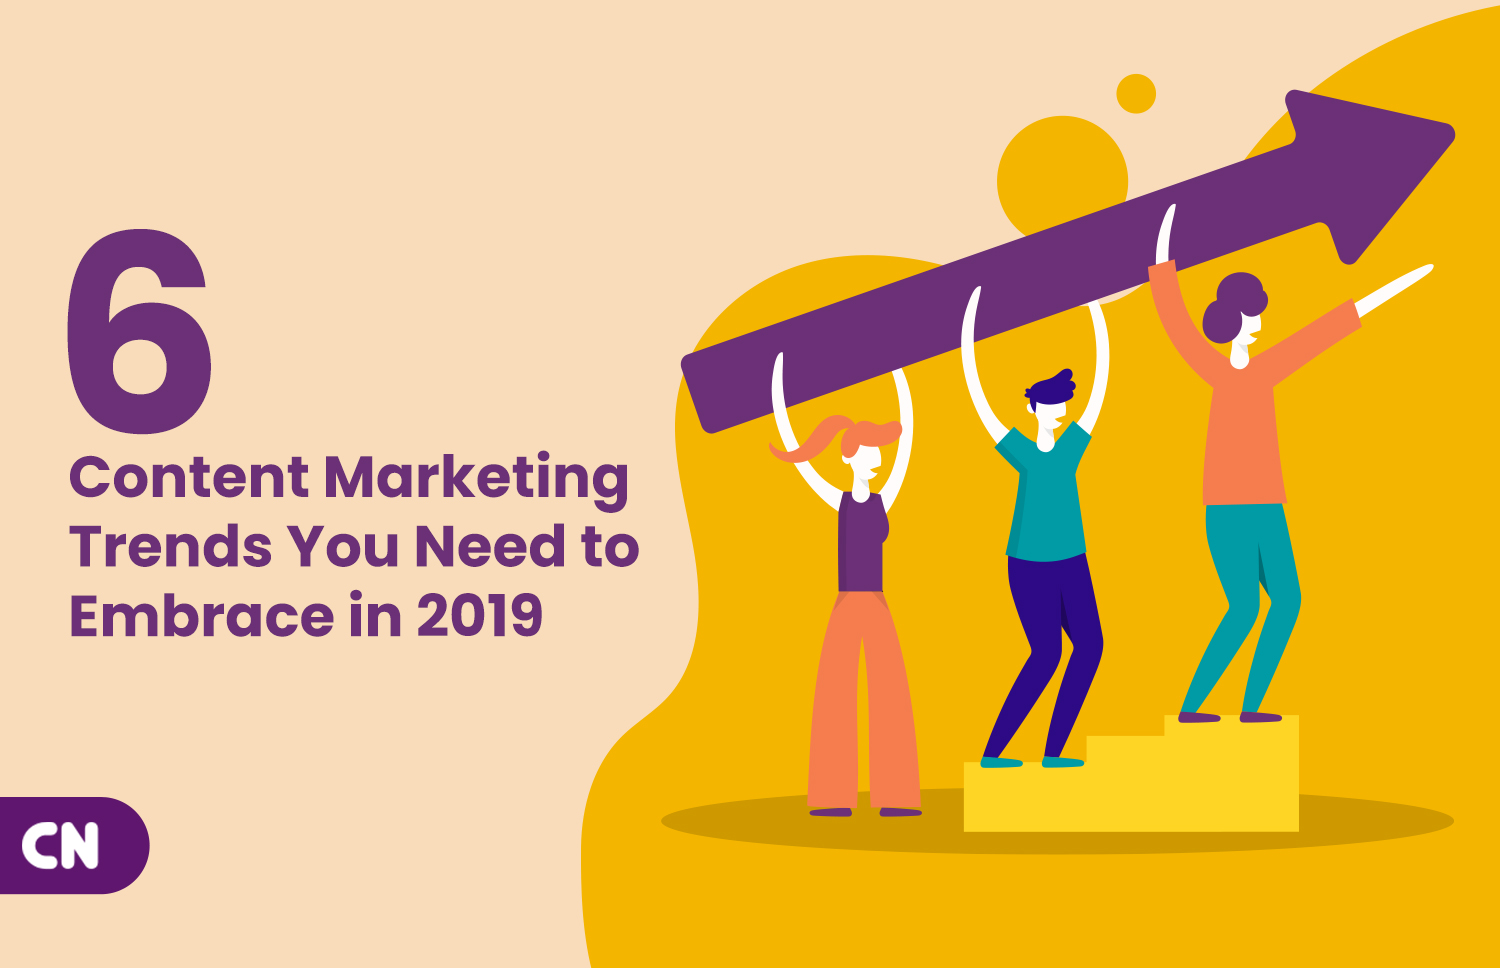 Six Content Marketing Trends You Need to Embrace in 2019